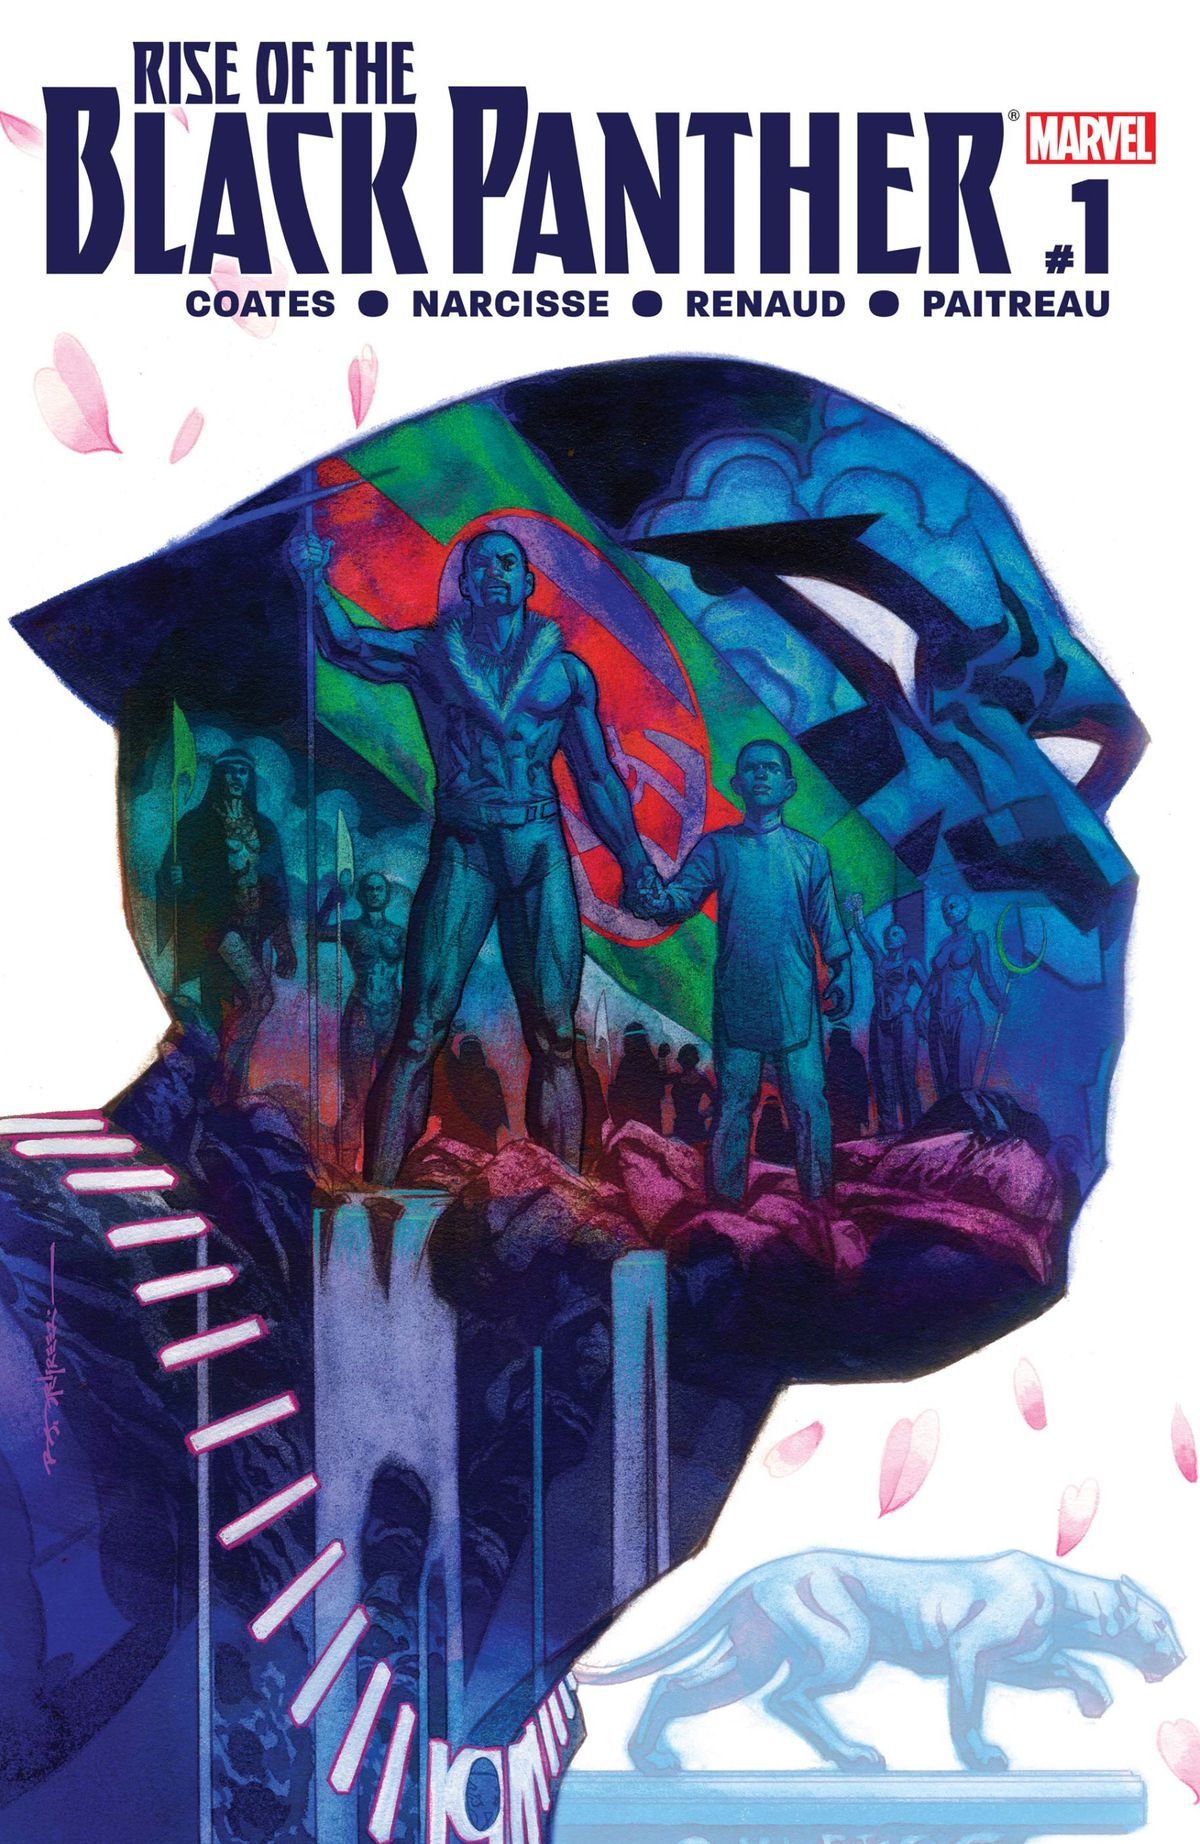 King T'chaka and prince T'challa stand on a waterfall, an image imposed over a silhouette of the head and shoulders of the Black Panther, on the cover of Rise of the Black Panther #1, Marvel Comics (2018).